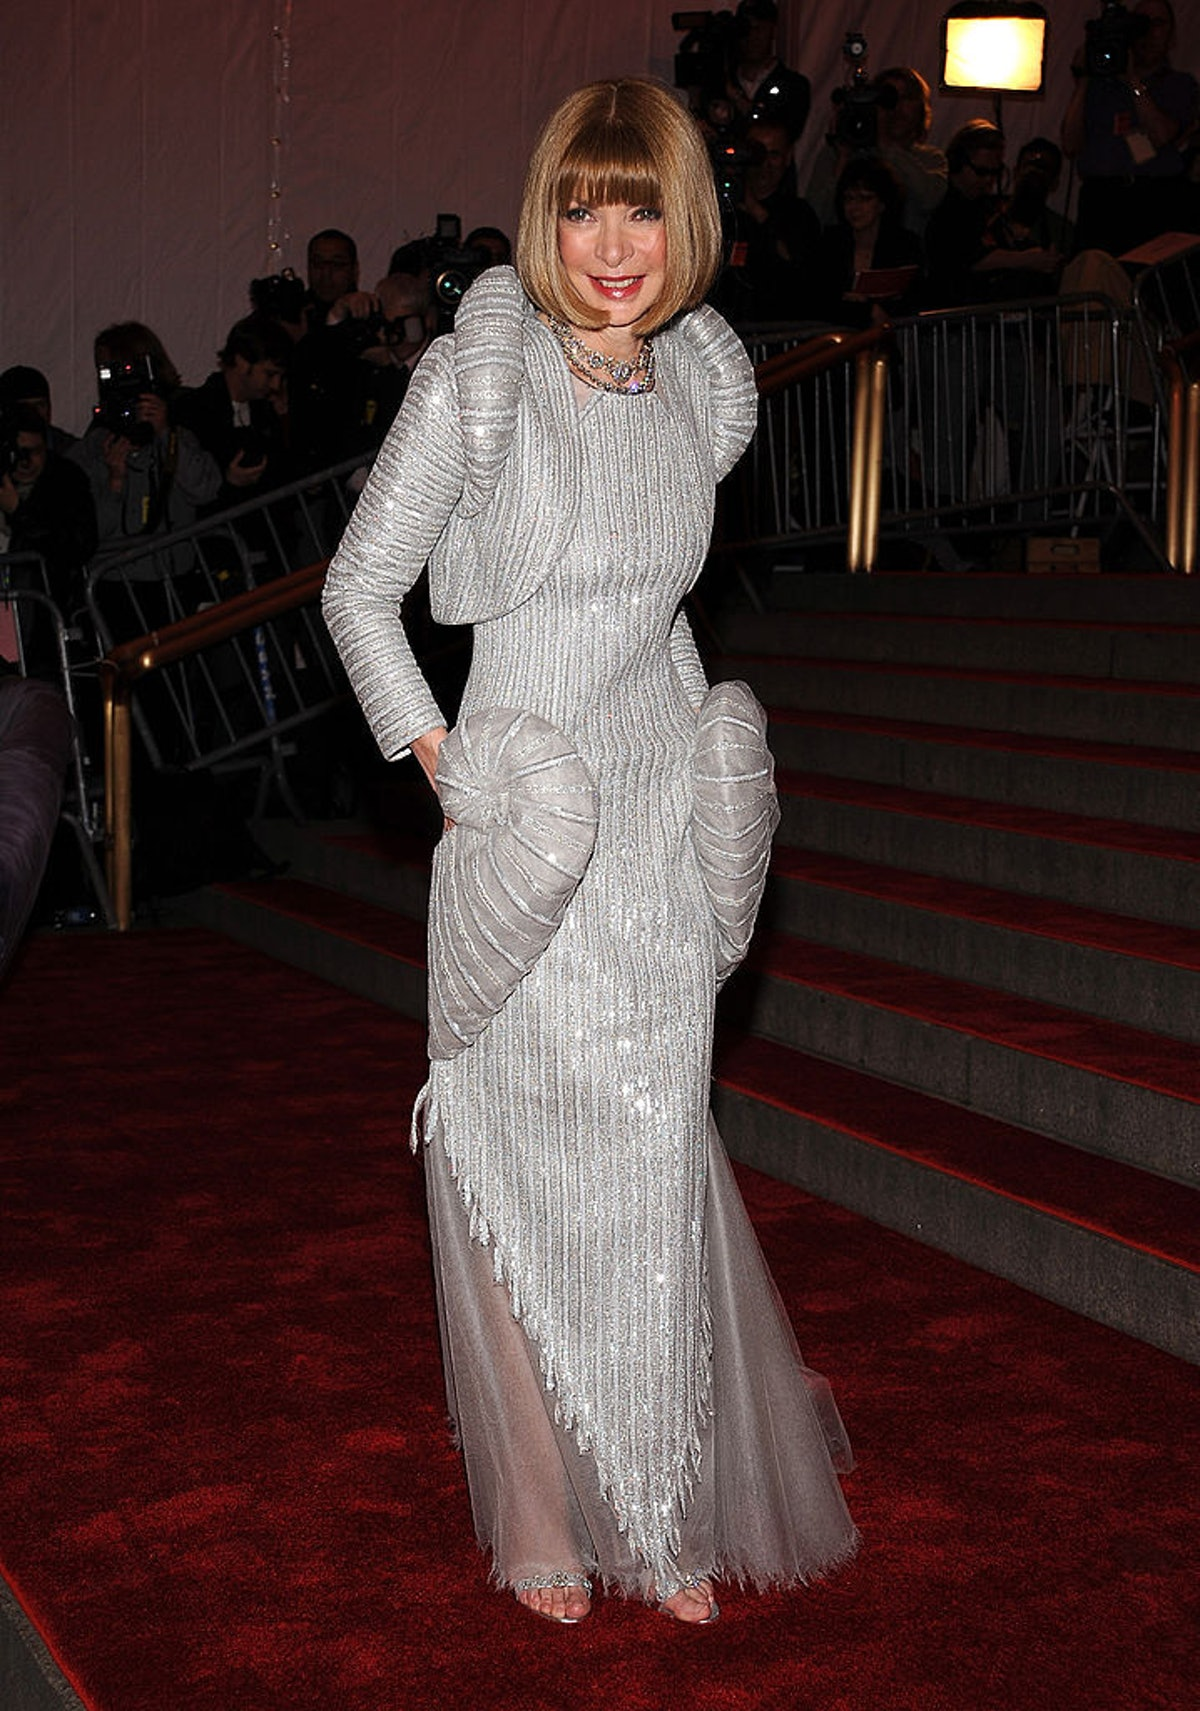 Anna Wintour at the Met Gala